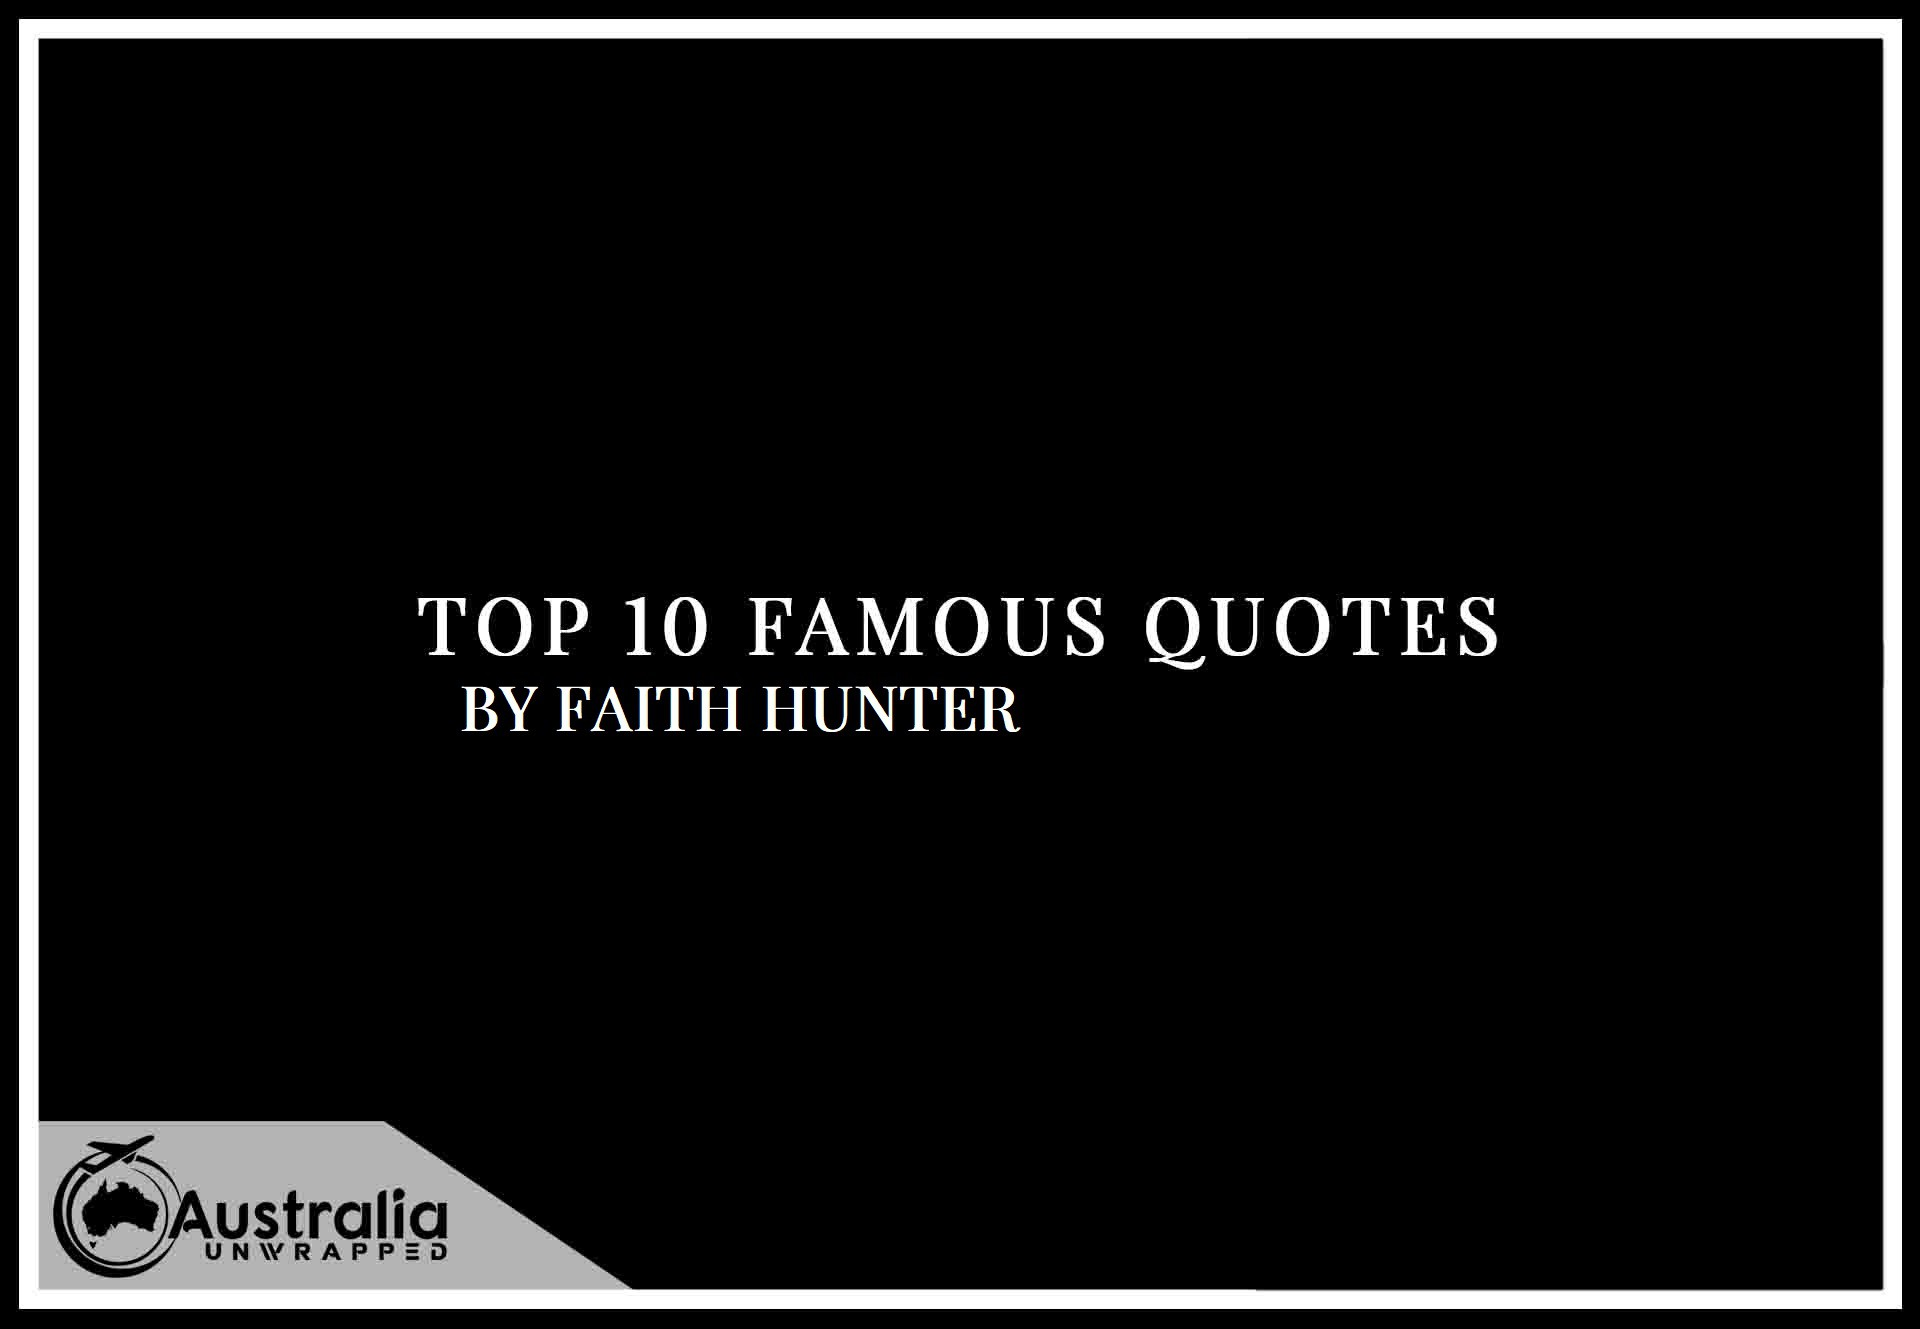 Top 10 Famous Quotes by Author Faith Hunter